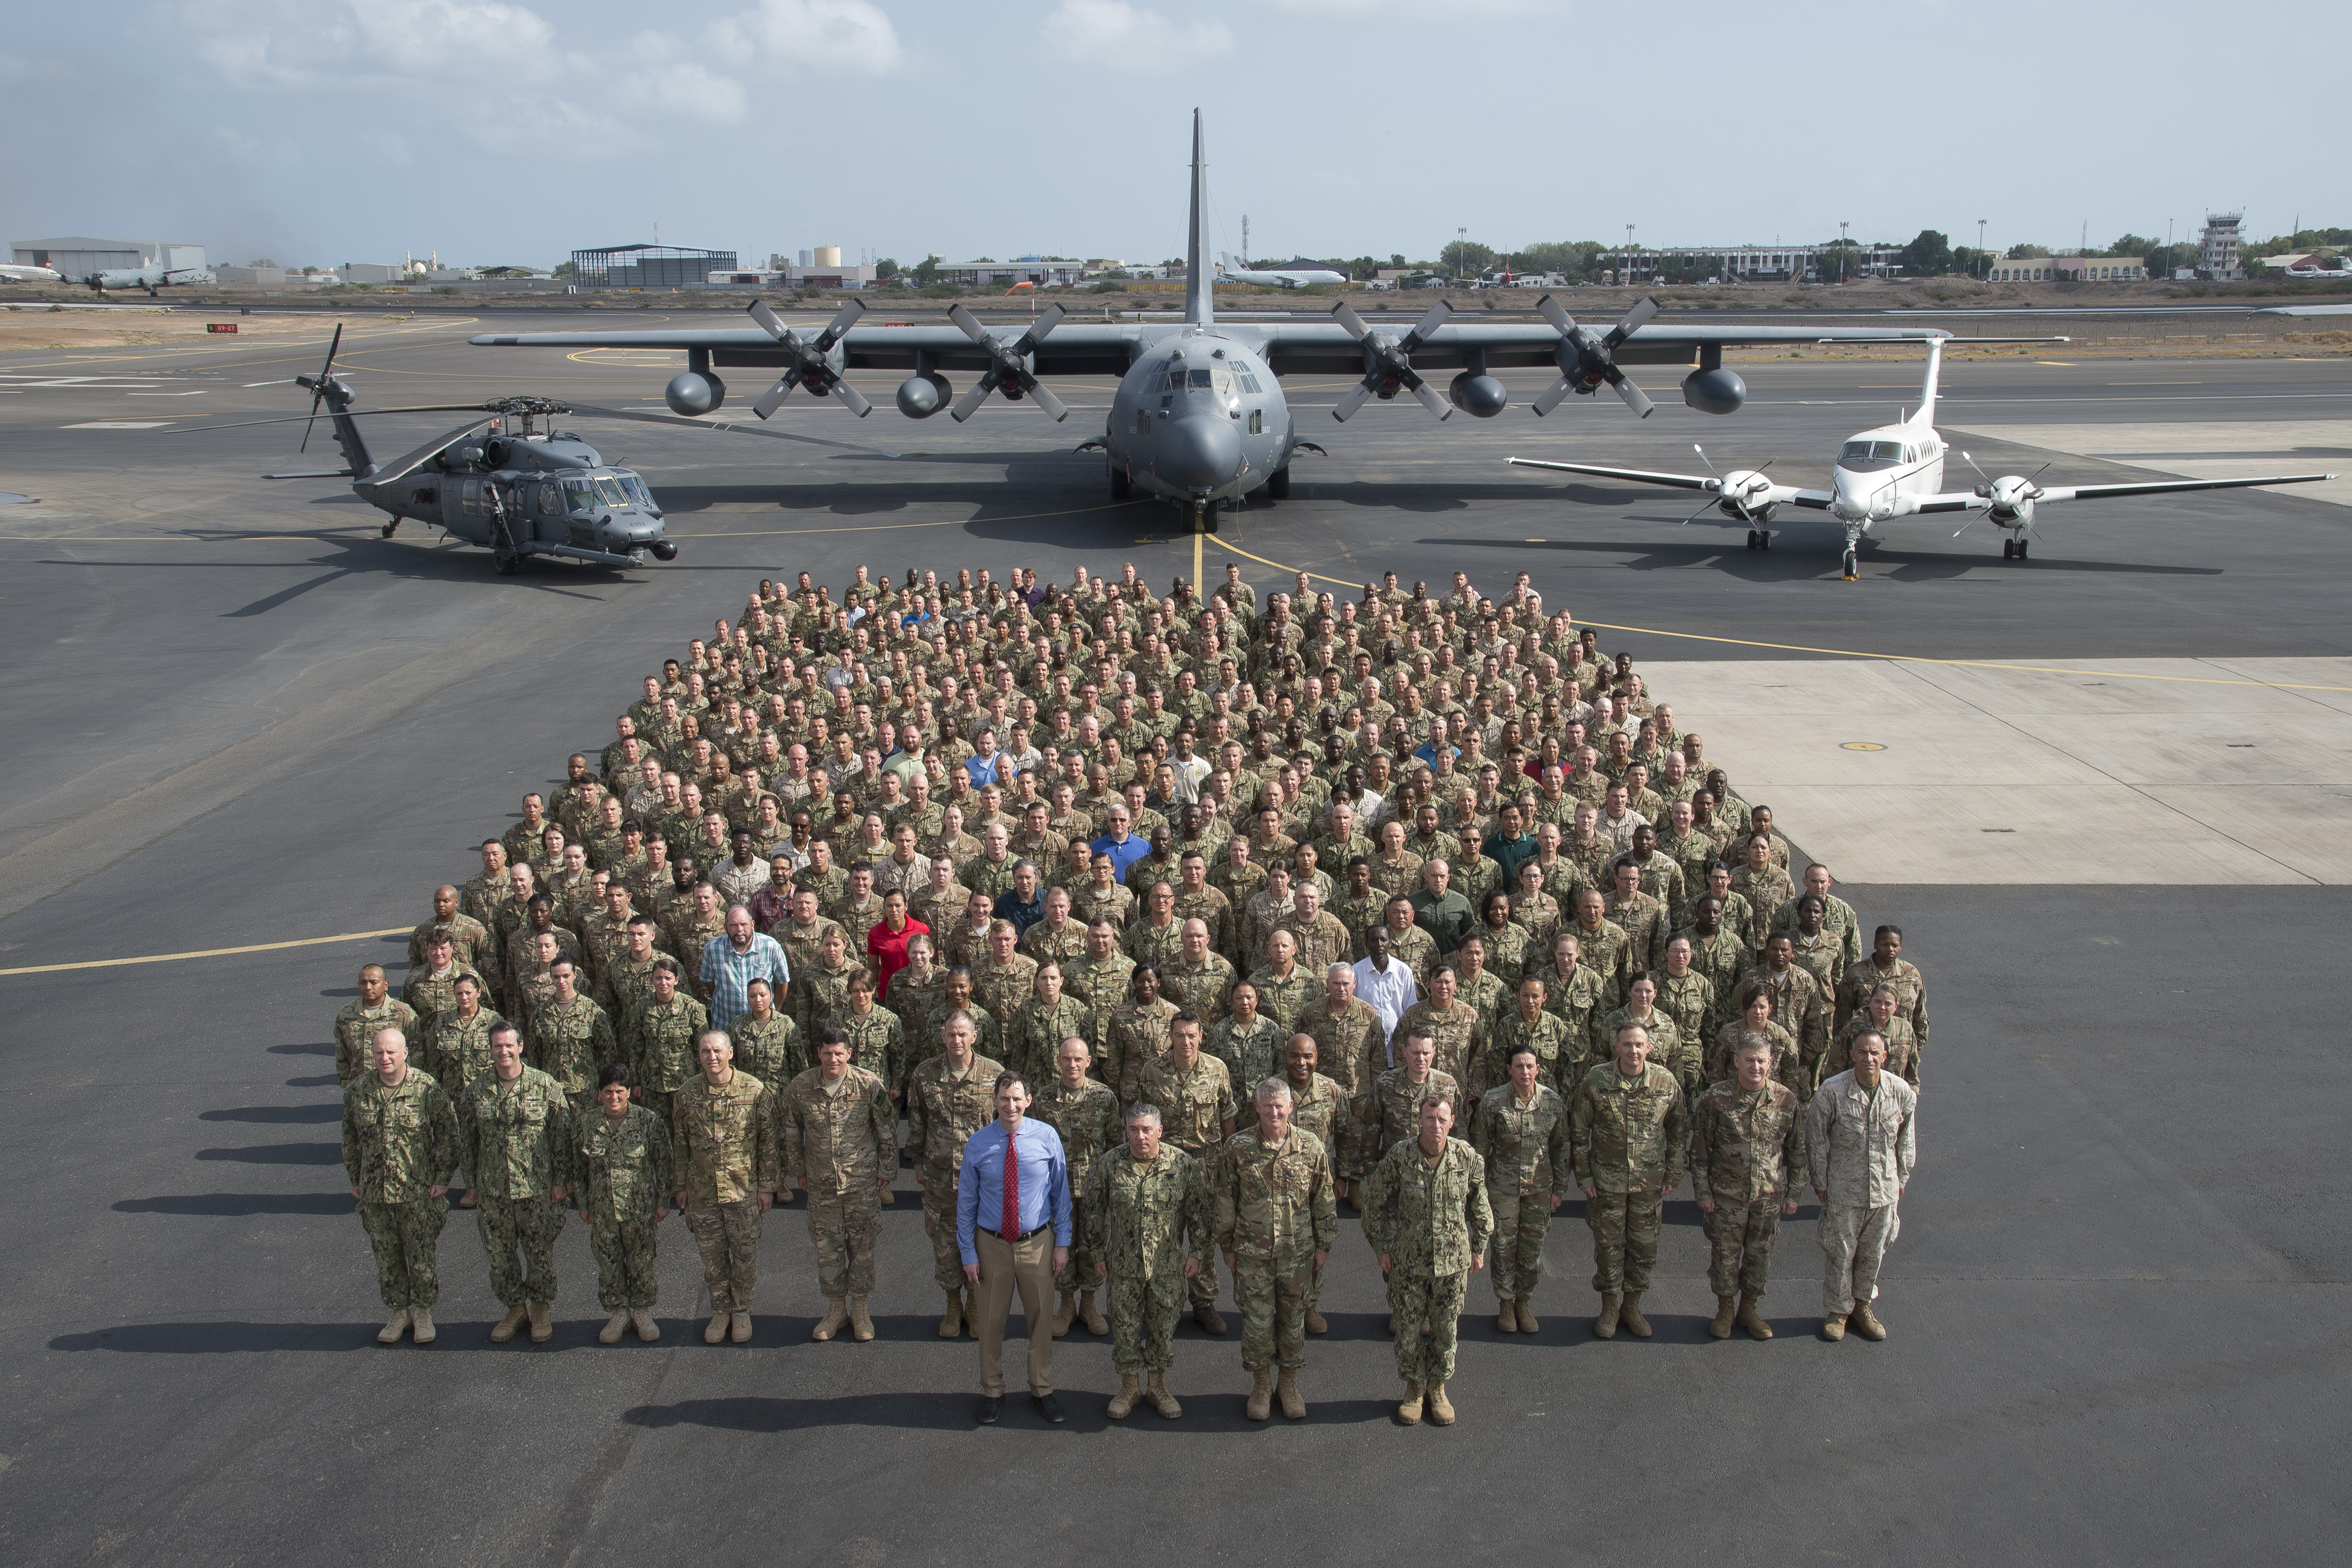 U.S. Soldiers, Sailors, Airmen, Marines, DoD civilians, and contractors representing more than 2,000 members assigned to Combined Joint Task Force-Horn of Africa assemble on the flight line at Camp Lemonnier in Djibouti, April 14, 2017. CJTF-HOA Commanding General Maj. Gen. Kurt Sonntag and Command Senior Enlisted Leader Command Master Chief Geoffrey Steffee, will conclude their tour after a change of command ceremony on April 28. (U.S. Air National Guard photo by Master Sgt. Paul Gorman)